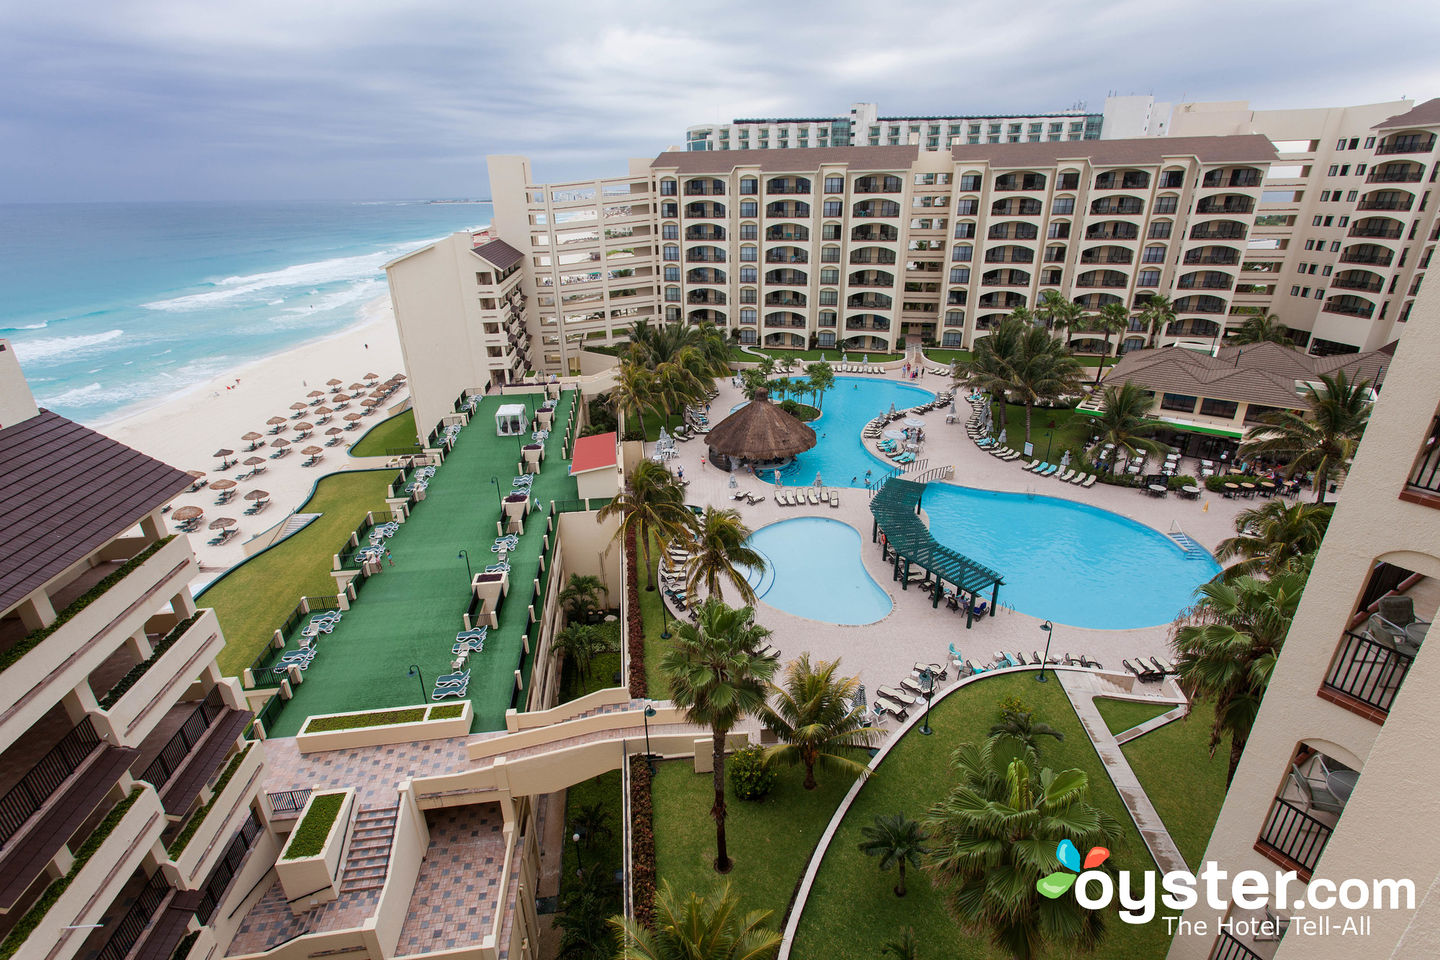 royal caribbean cancun map The Royal Islander All Suites Resort Review What To Really Expect royal caribbean cancun map